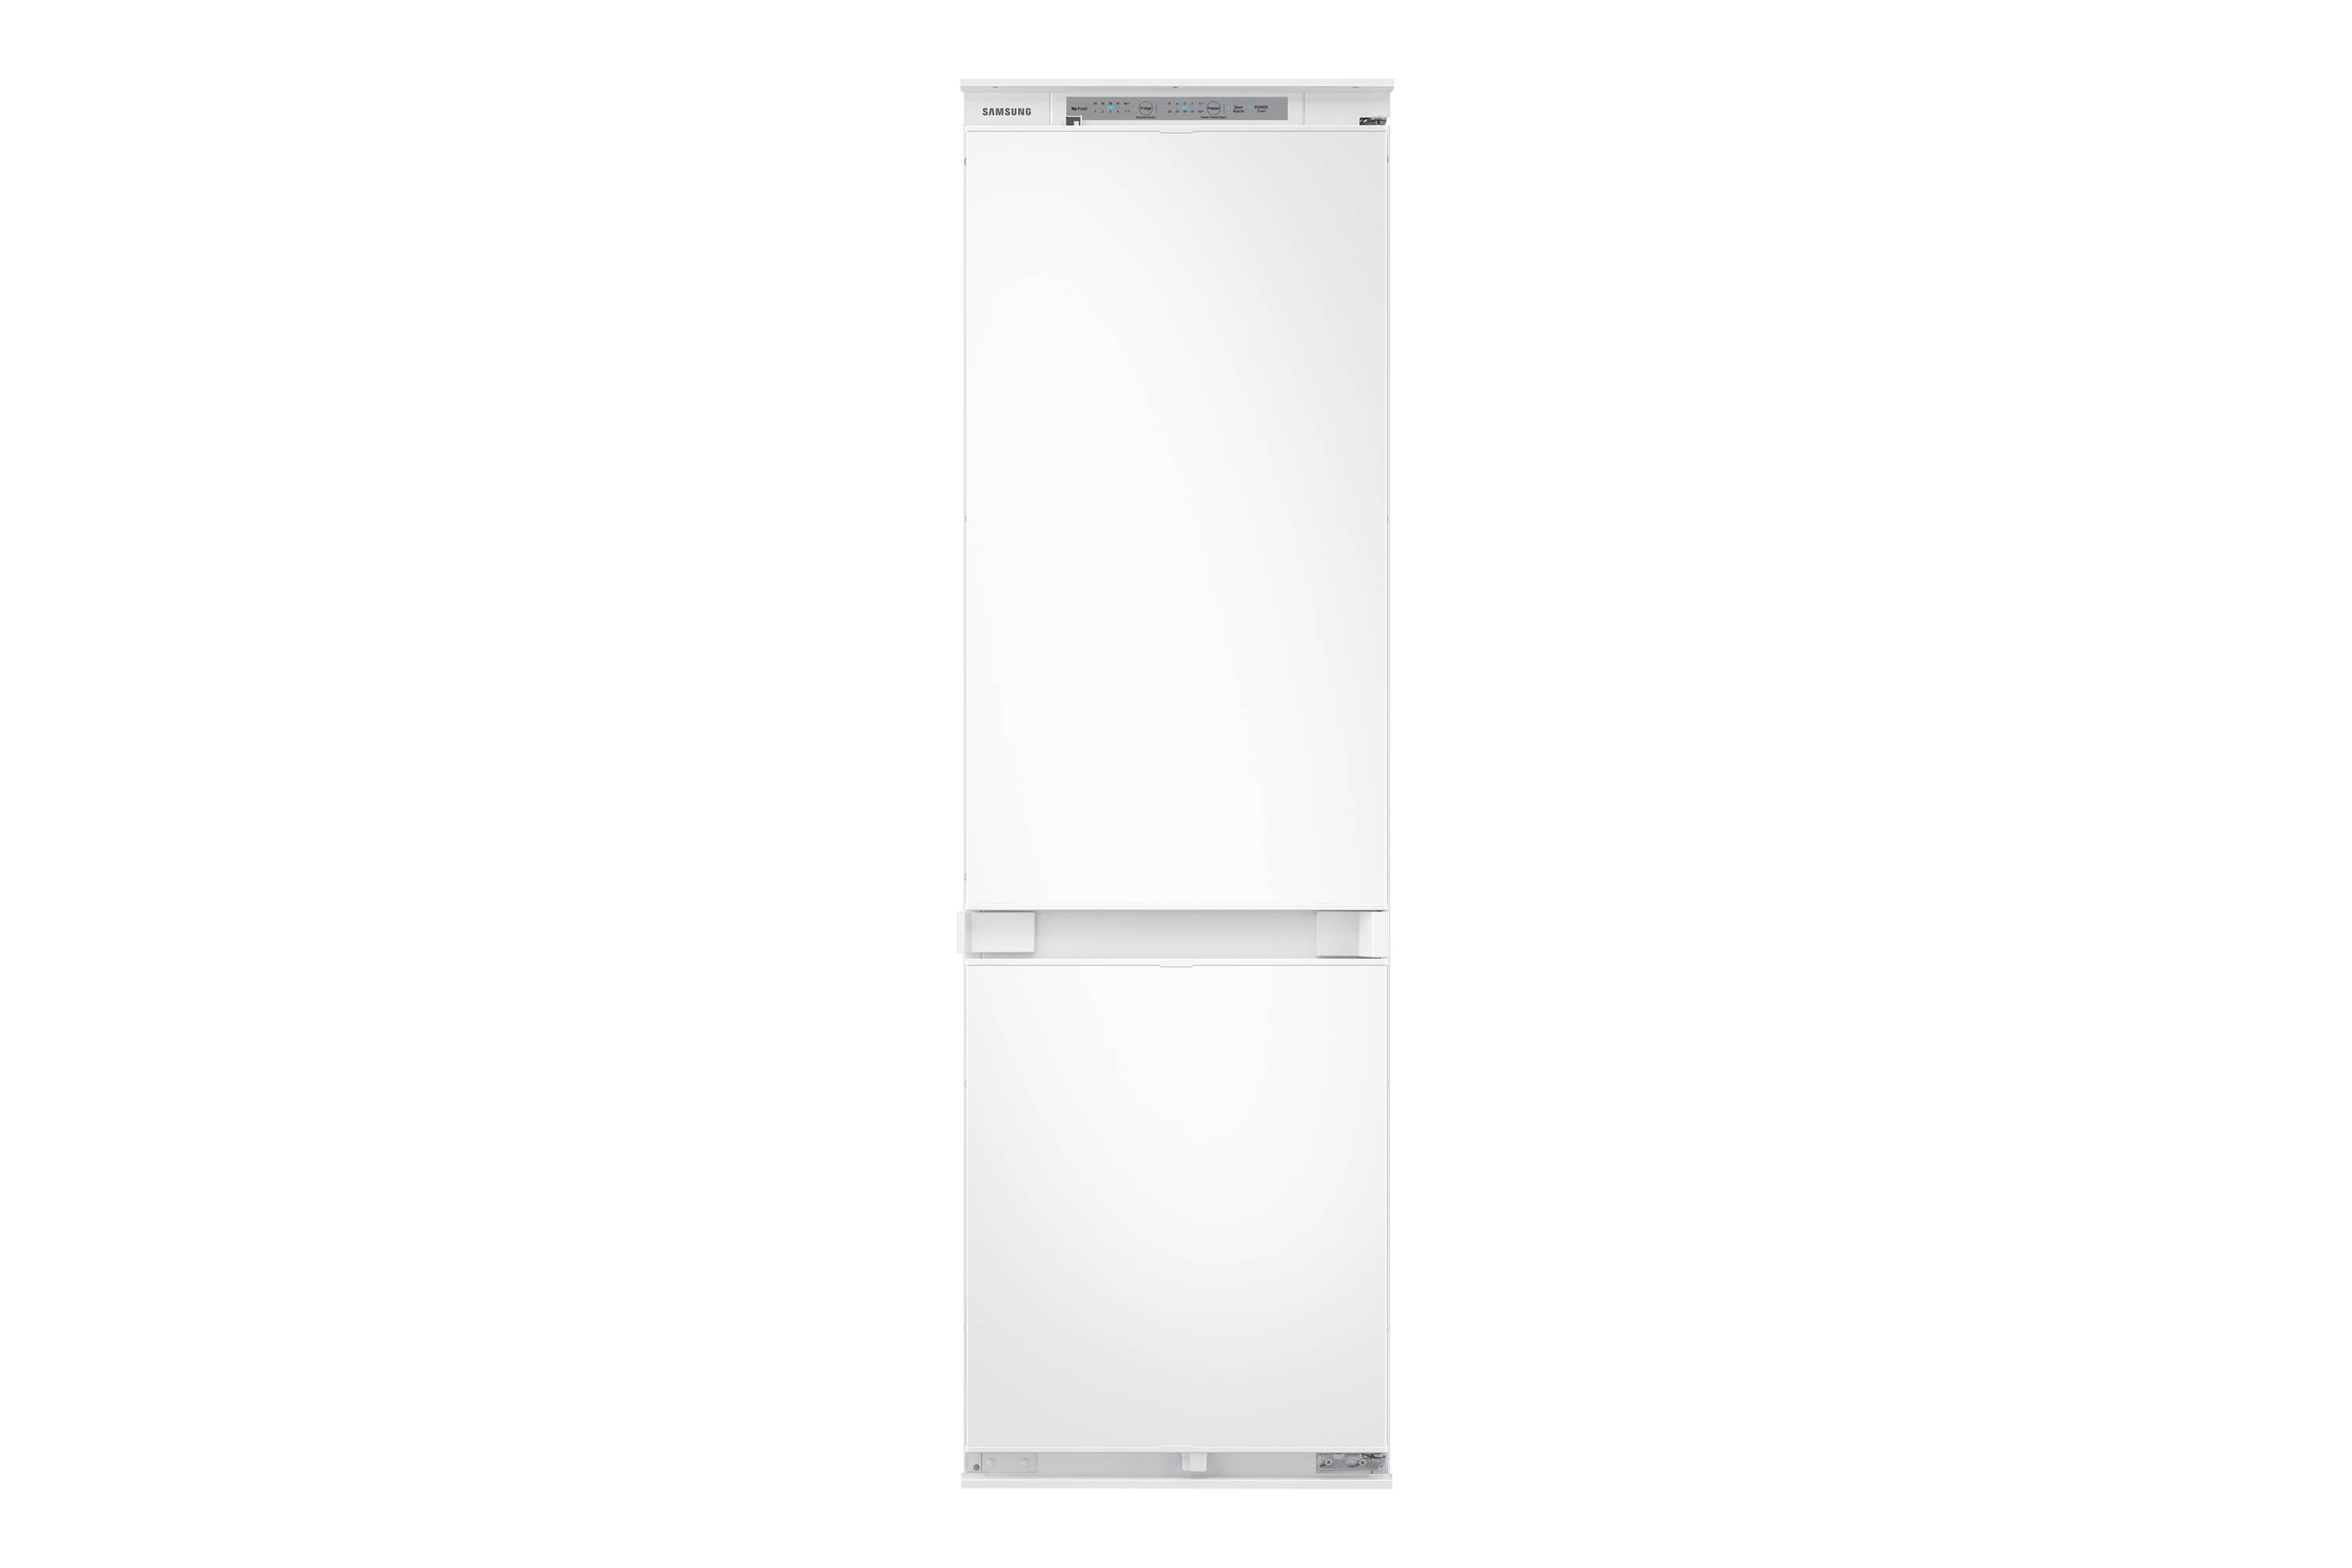 Samsung Integrated Fridge Freezer with No Frost, Slide Hinge in White (BRB26600FWW/EU)